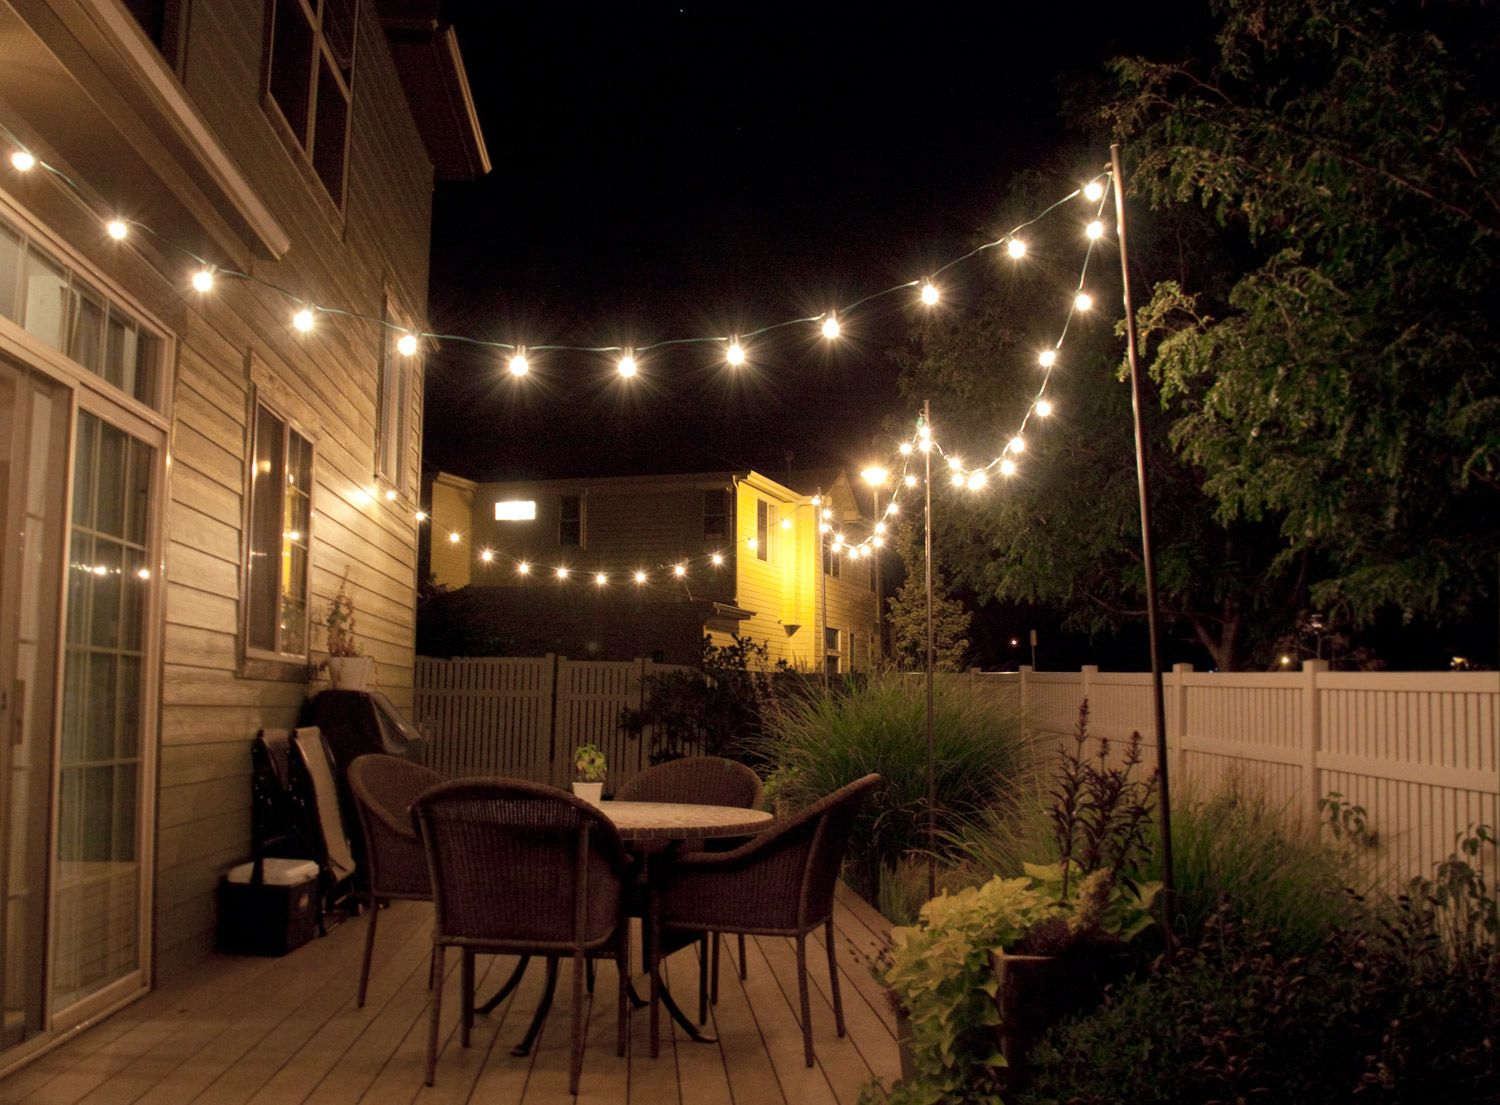 how to make inexpensive poles to hang string lights on caf style rh pinterest com best outdoor string patio lights outdoor string patio lighting